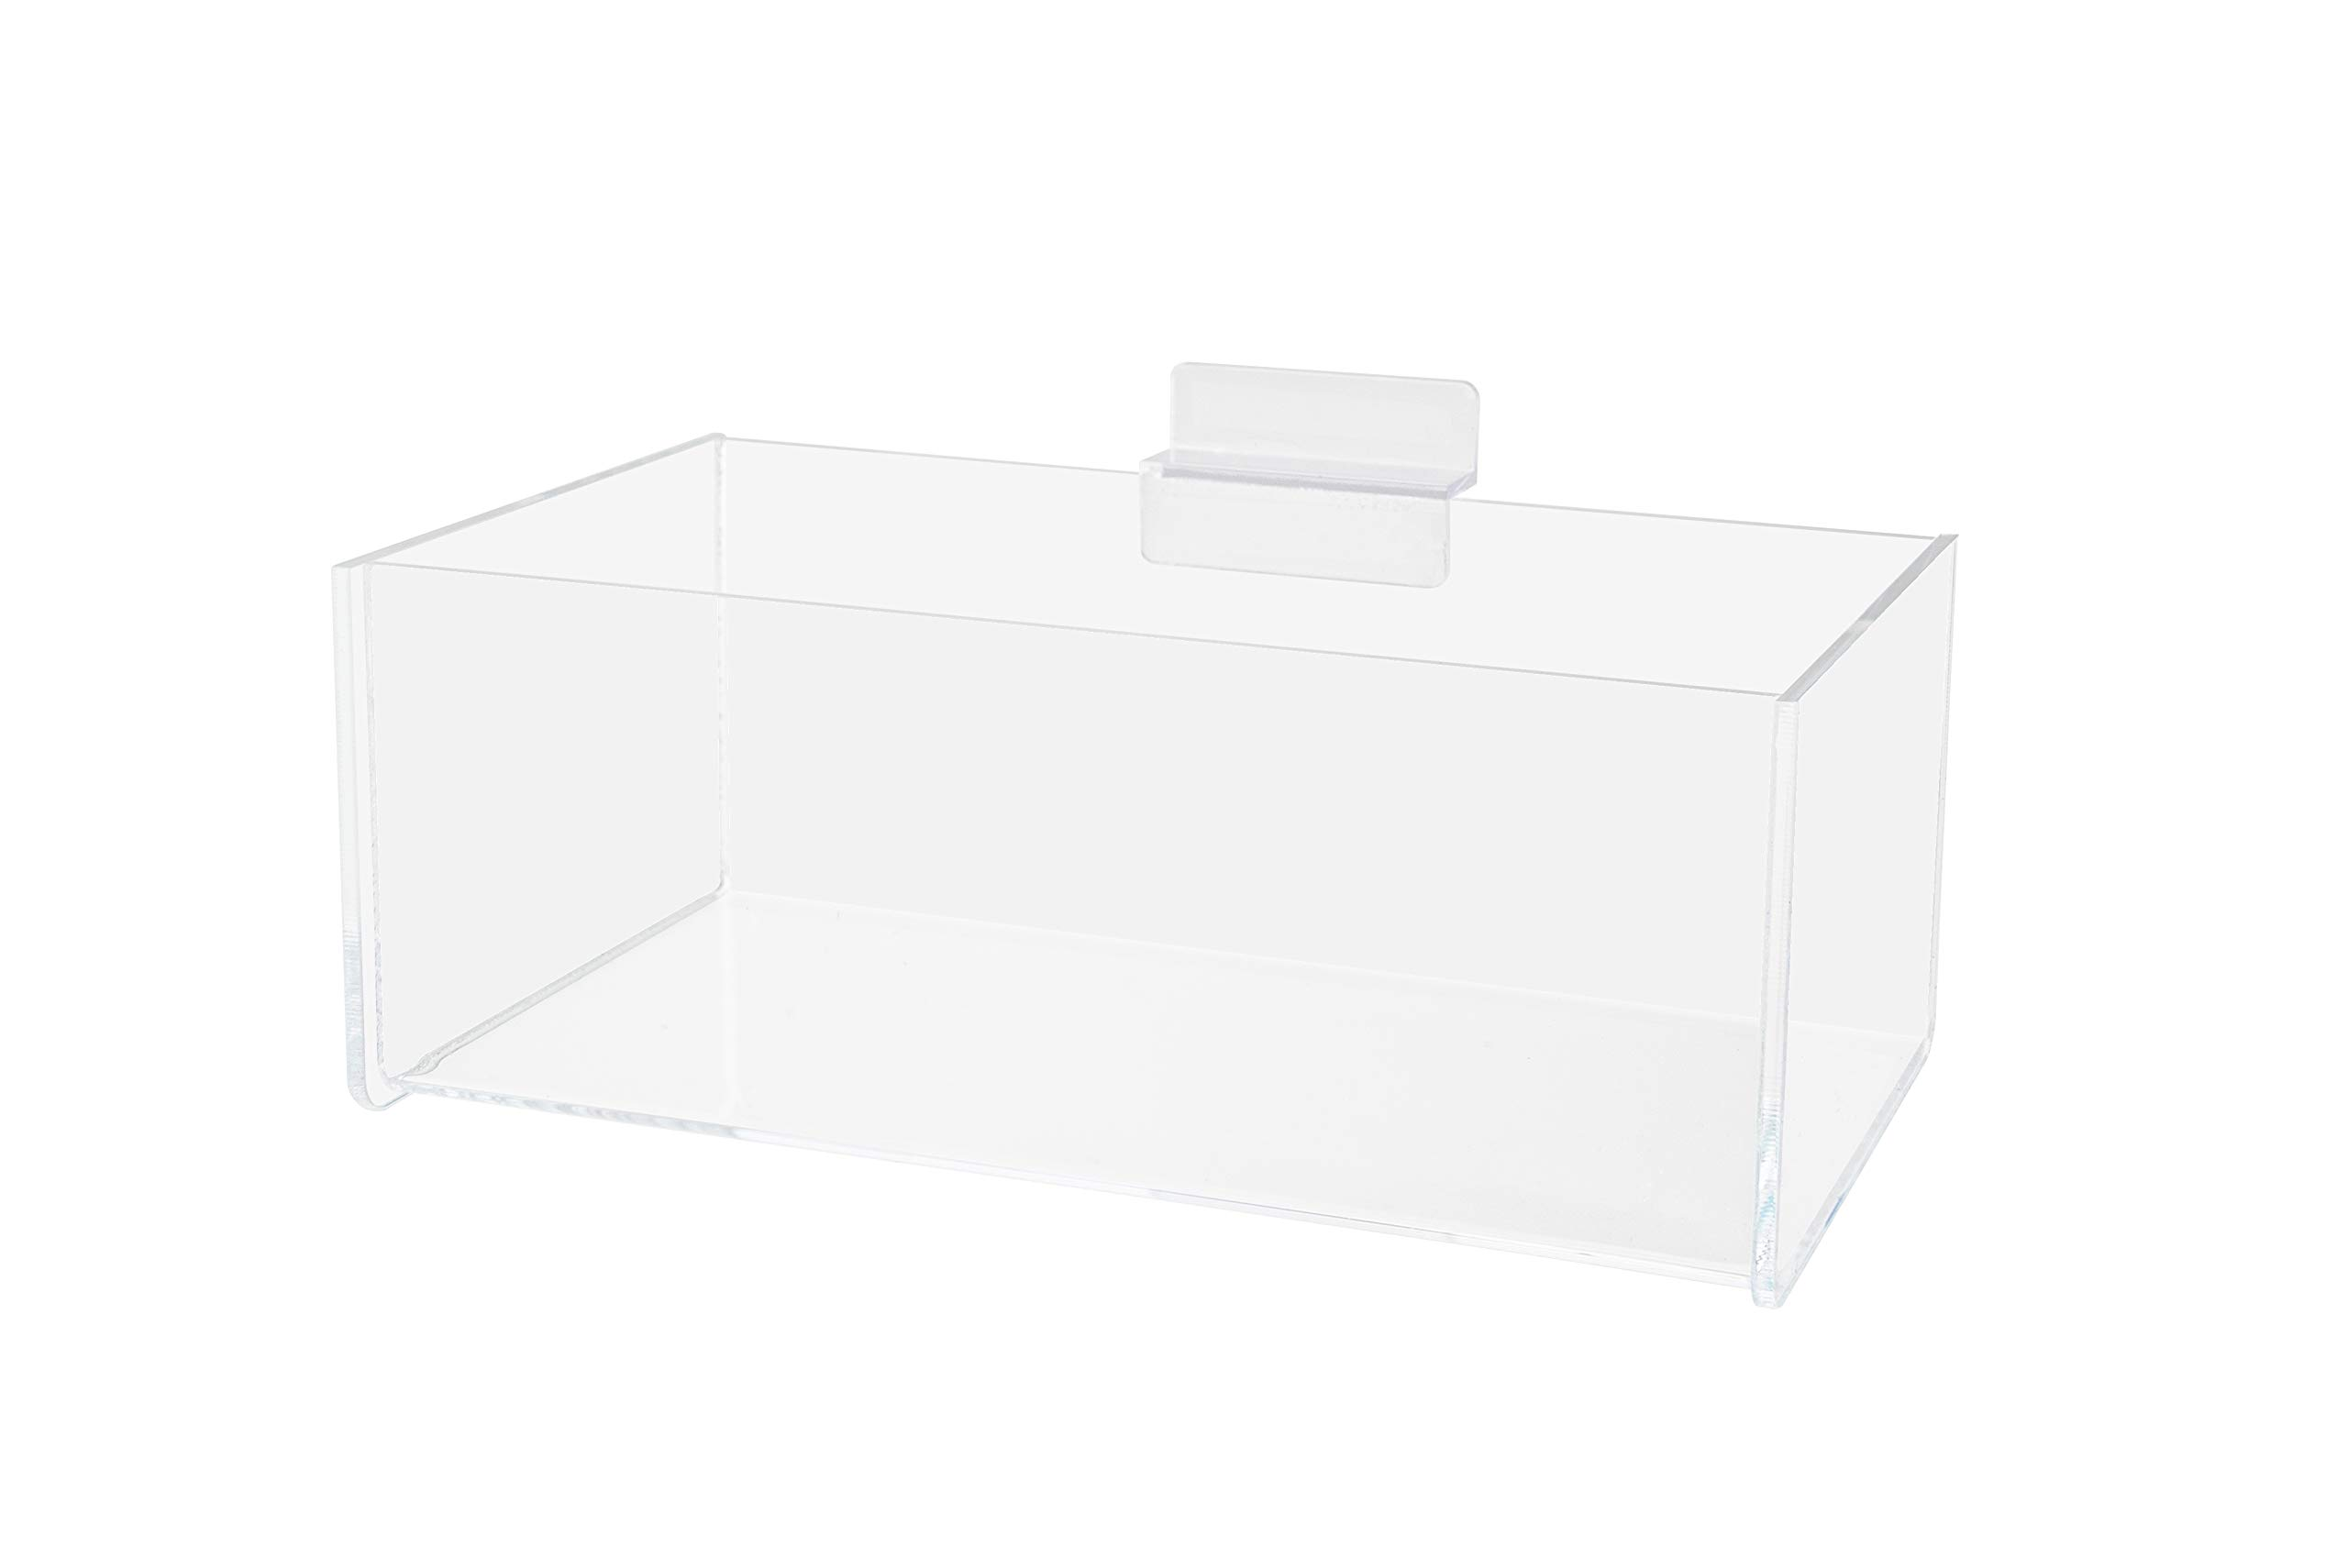 Marketing Holders Slatwall Storage Bin Coffee Bar Essential Condiment Caddy Toys Legos Paper Clips Office Supplies (1, 8''w x 3''h Pack of 6) by Marketing Holders